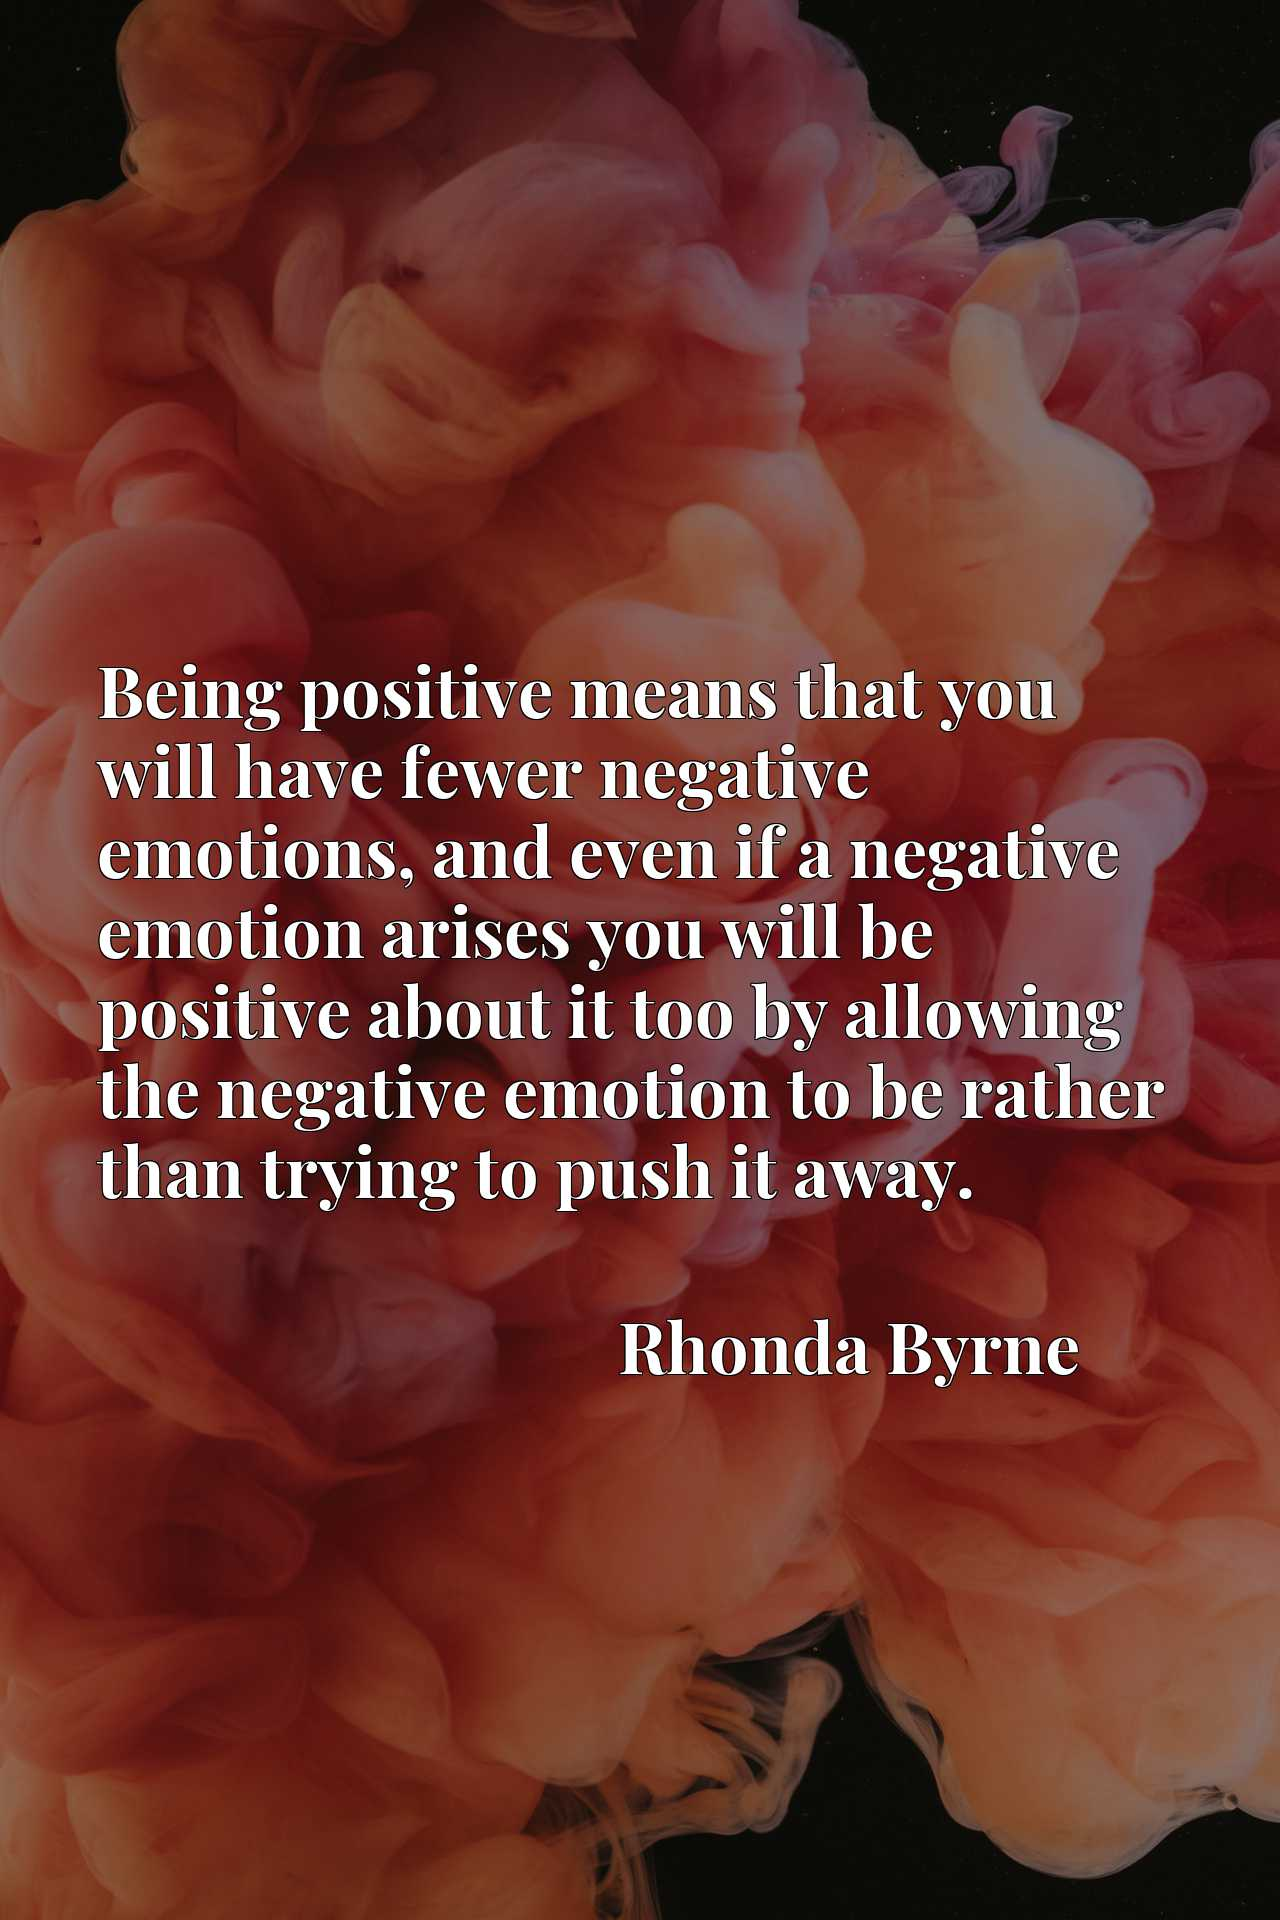 Being positive means that you will have fewer negative emotions, and even if a negative emotion arises you will be positive about it too by allowing the negative emotion to be rather than trying to push it away.